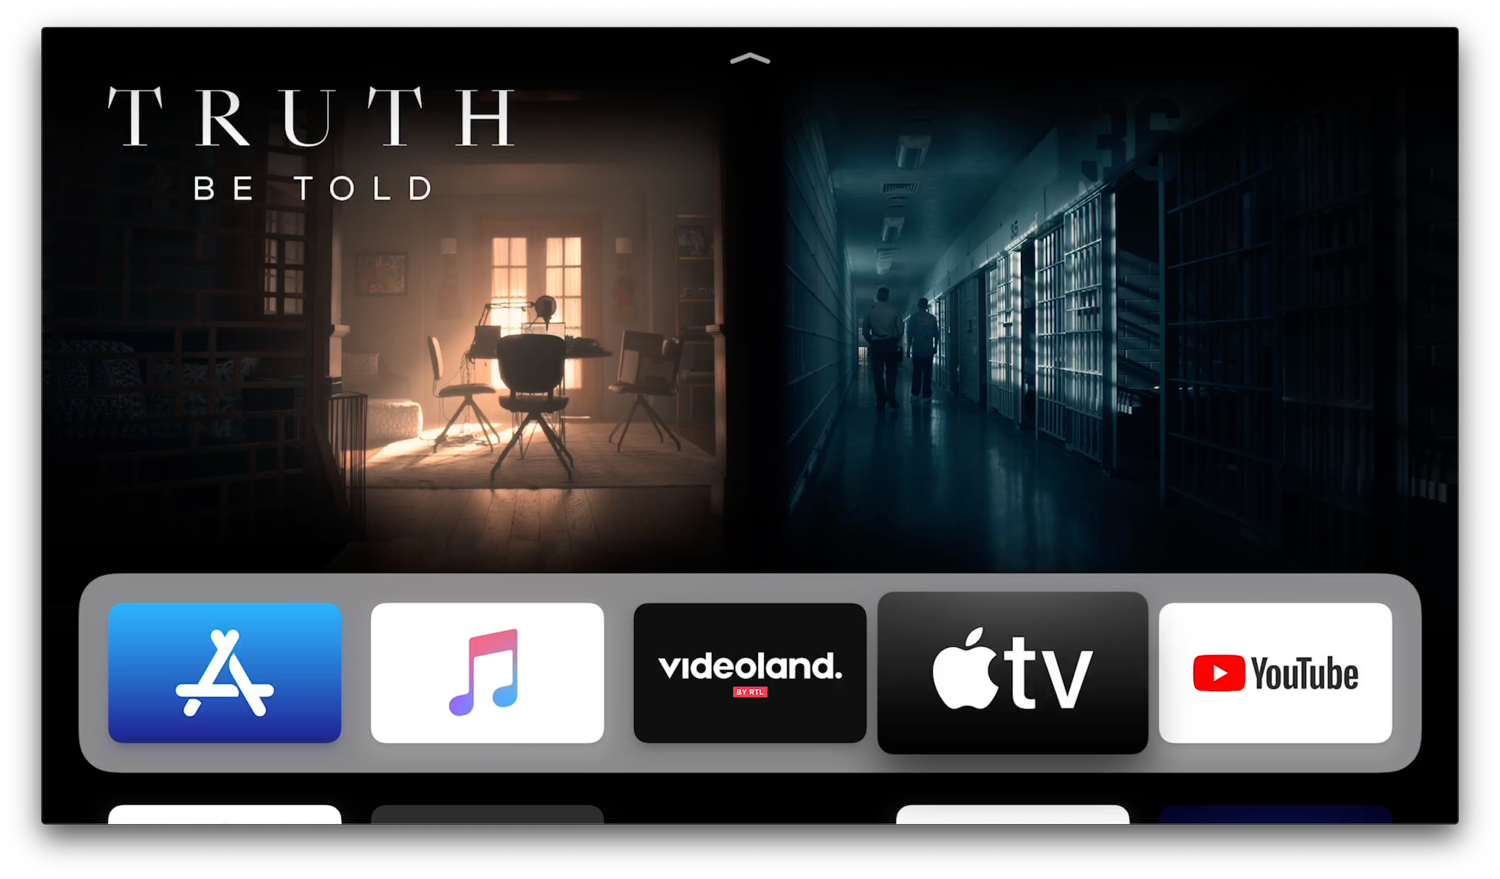 Aanbevolen films en series in Top Shelf voor TV-app op Apple TV.